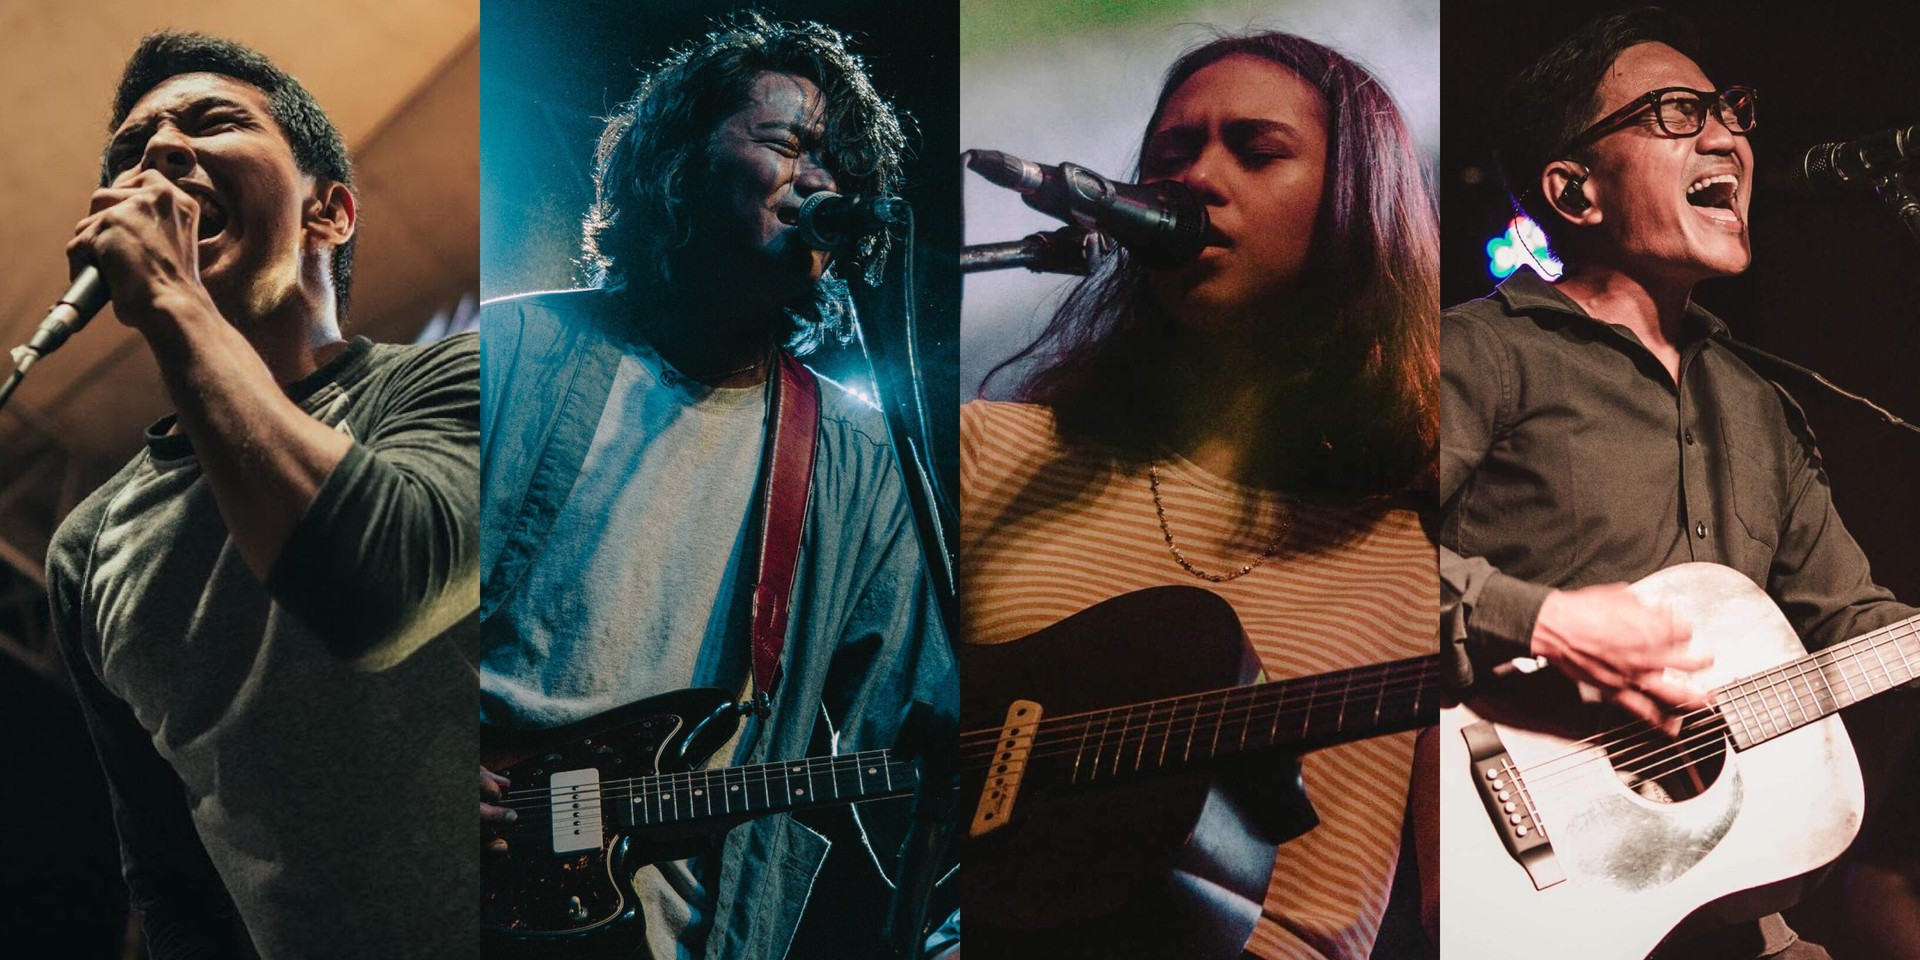 Red Ninja reveals full line-up for 9th birthday party - Dicta License, Ebe Dancel, and more